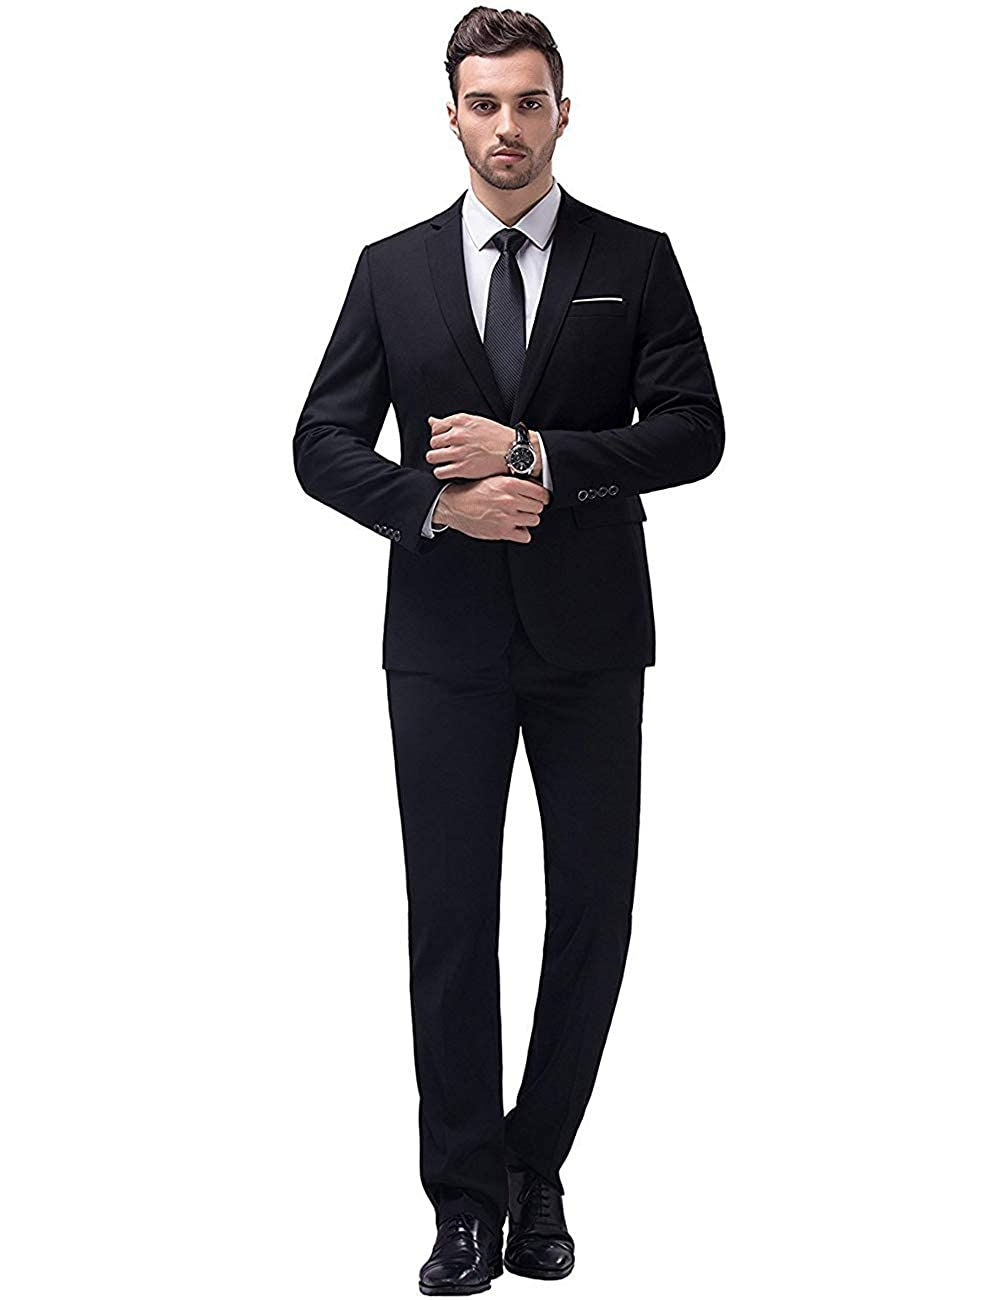 Men's Suit Business